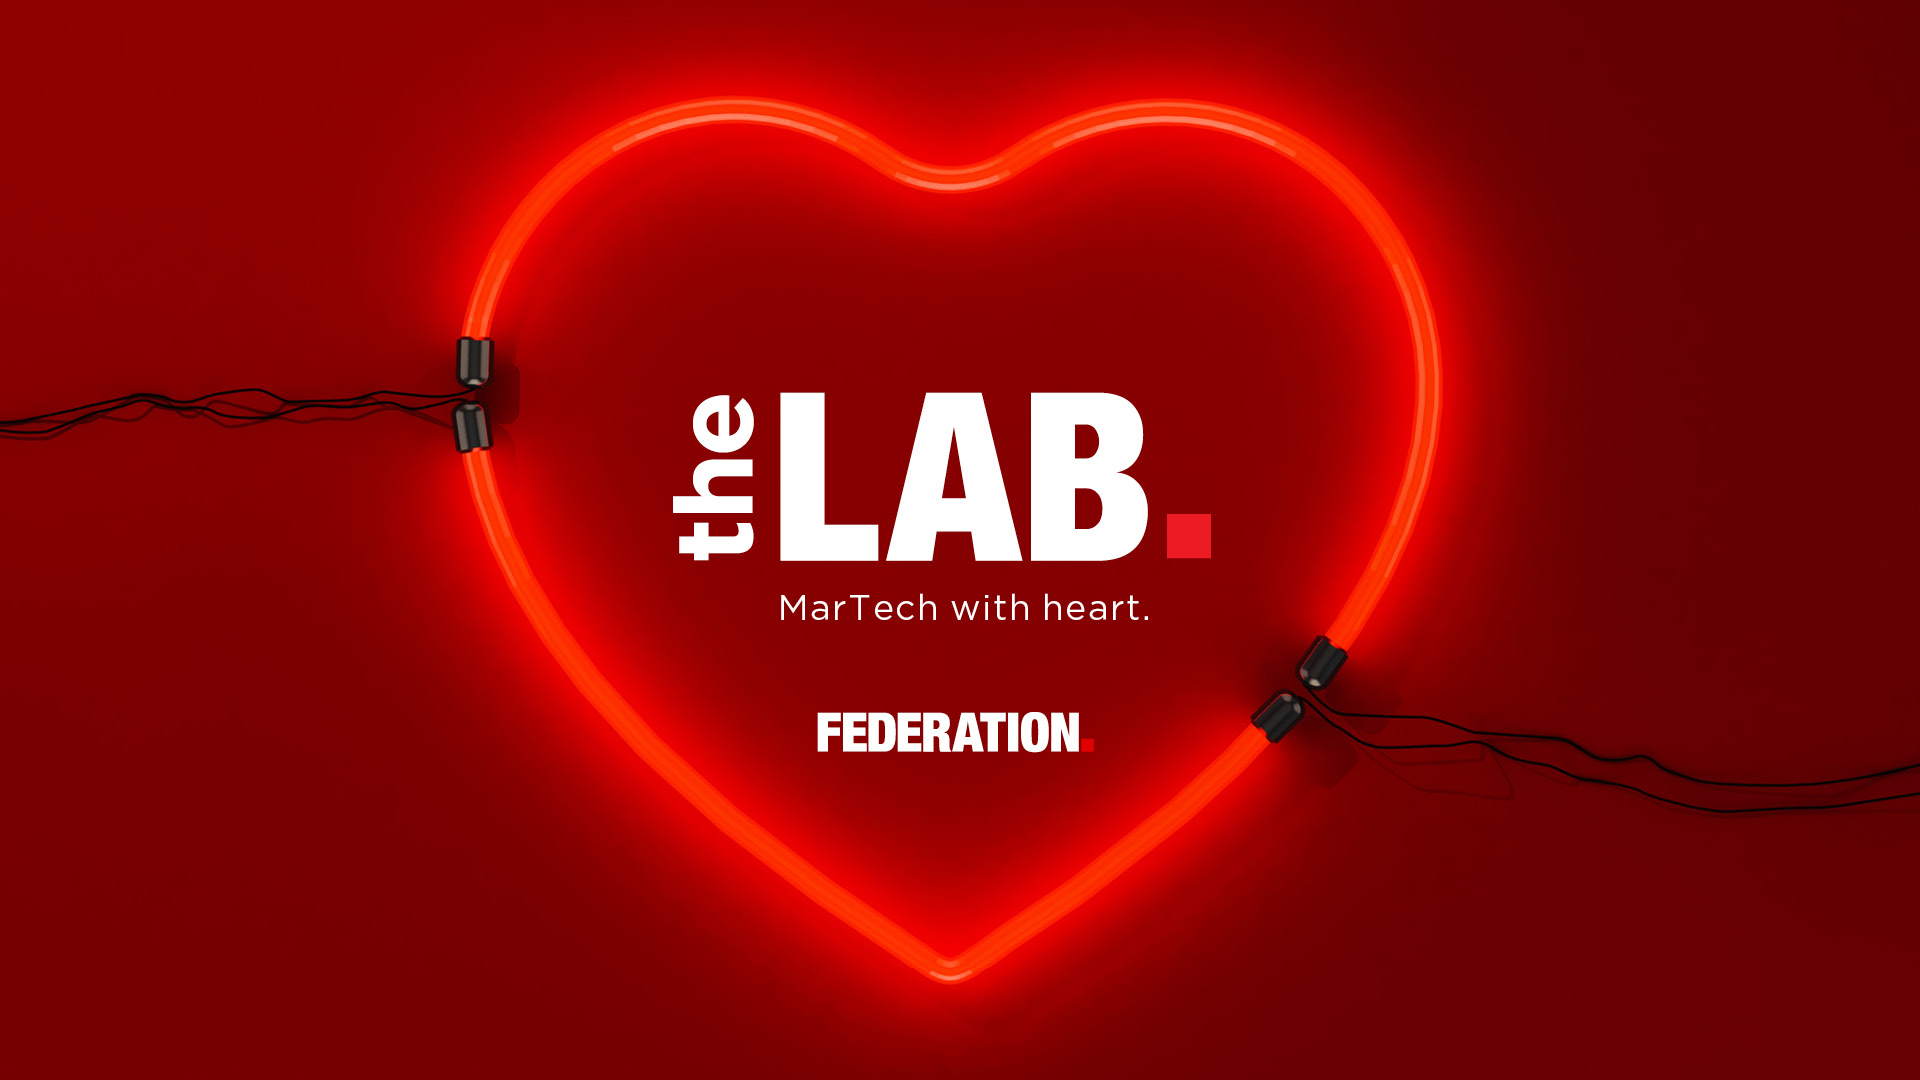 Indie NZ agency FEDERATION launches THE LAB, to fuse human emotion into marketing technology